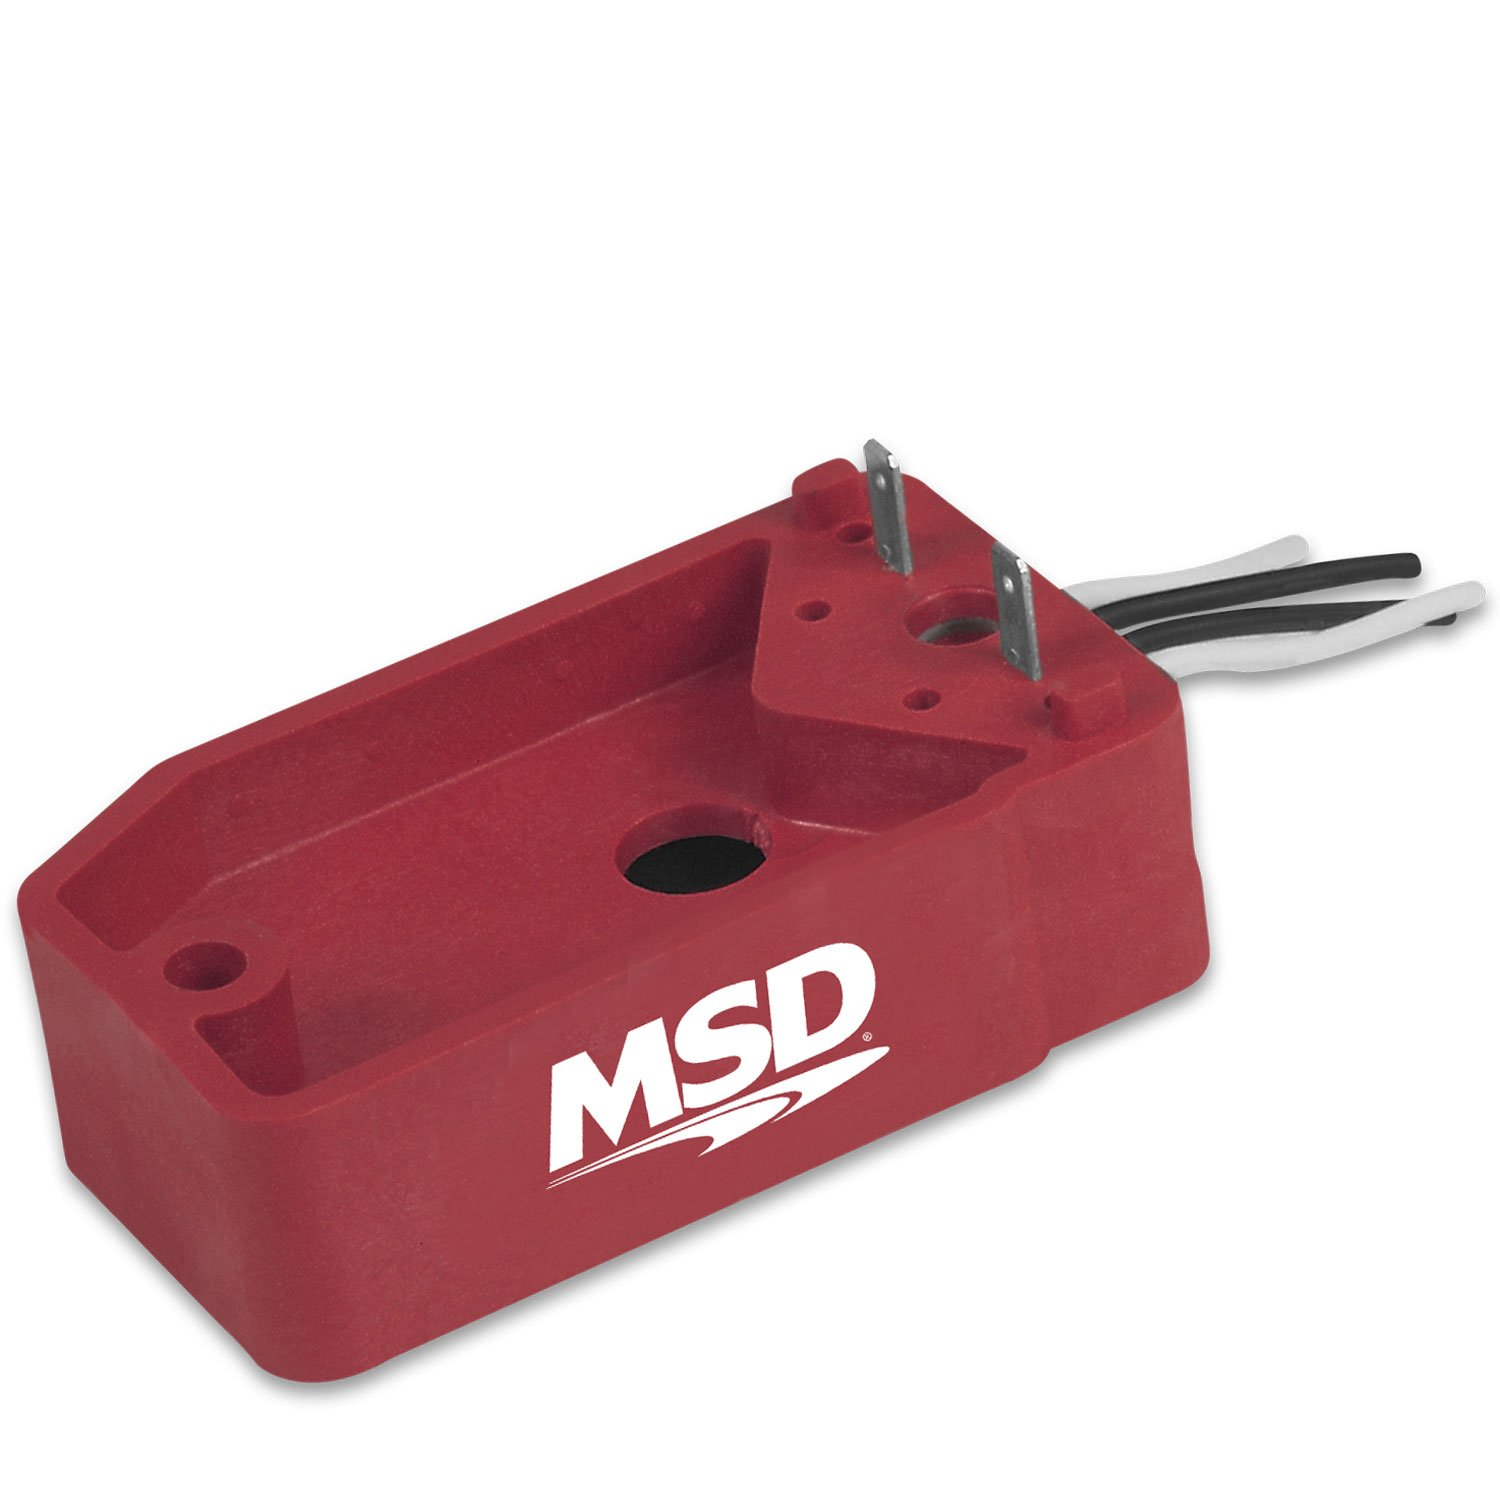 Msd 8870 Coil Interface Blockgm Dual Tower Coils Gm Dis Wiring Image